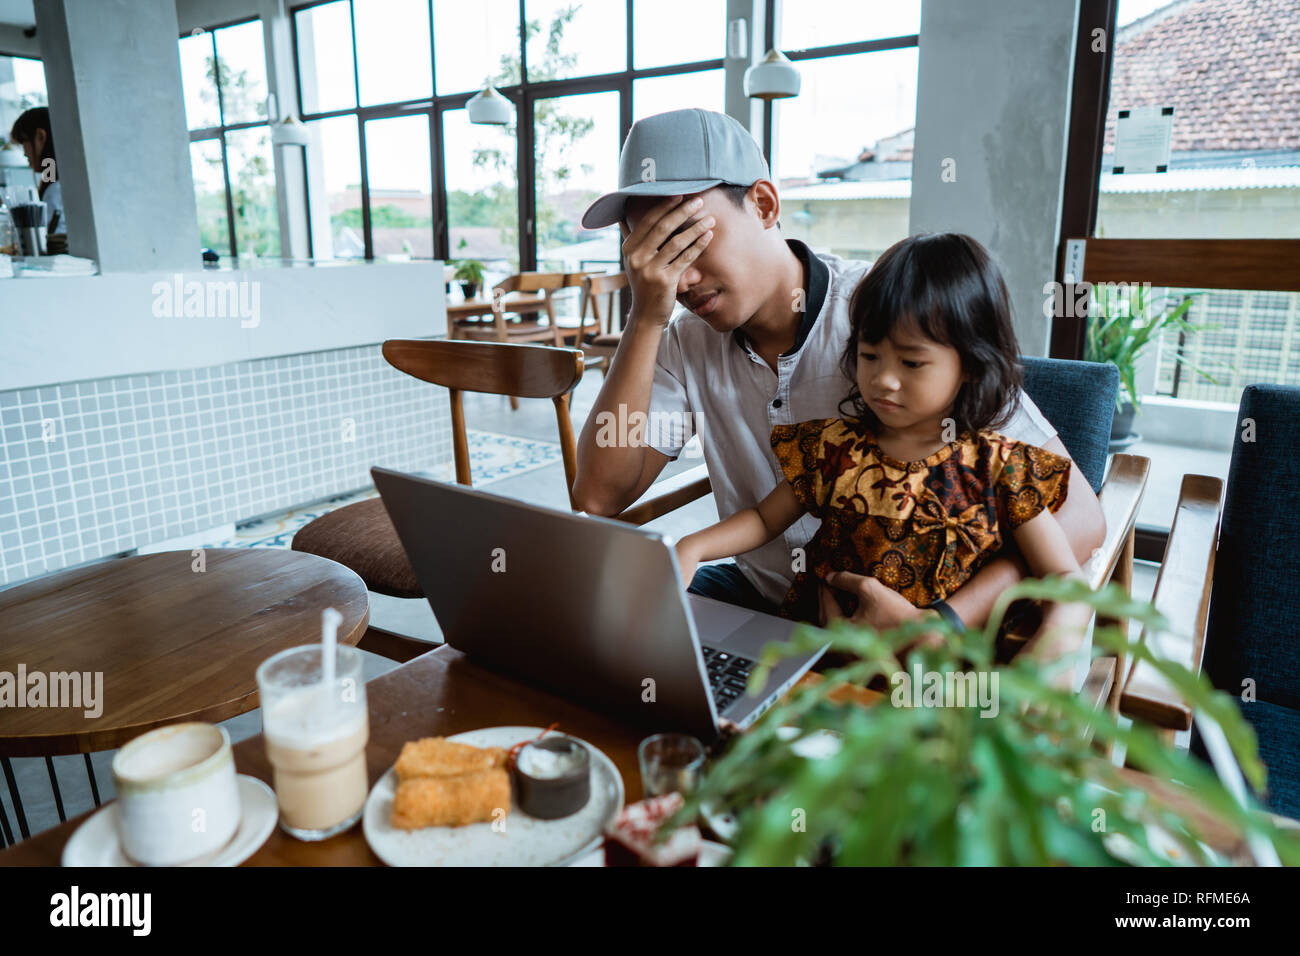 child disturb her dad while working - Stock Image